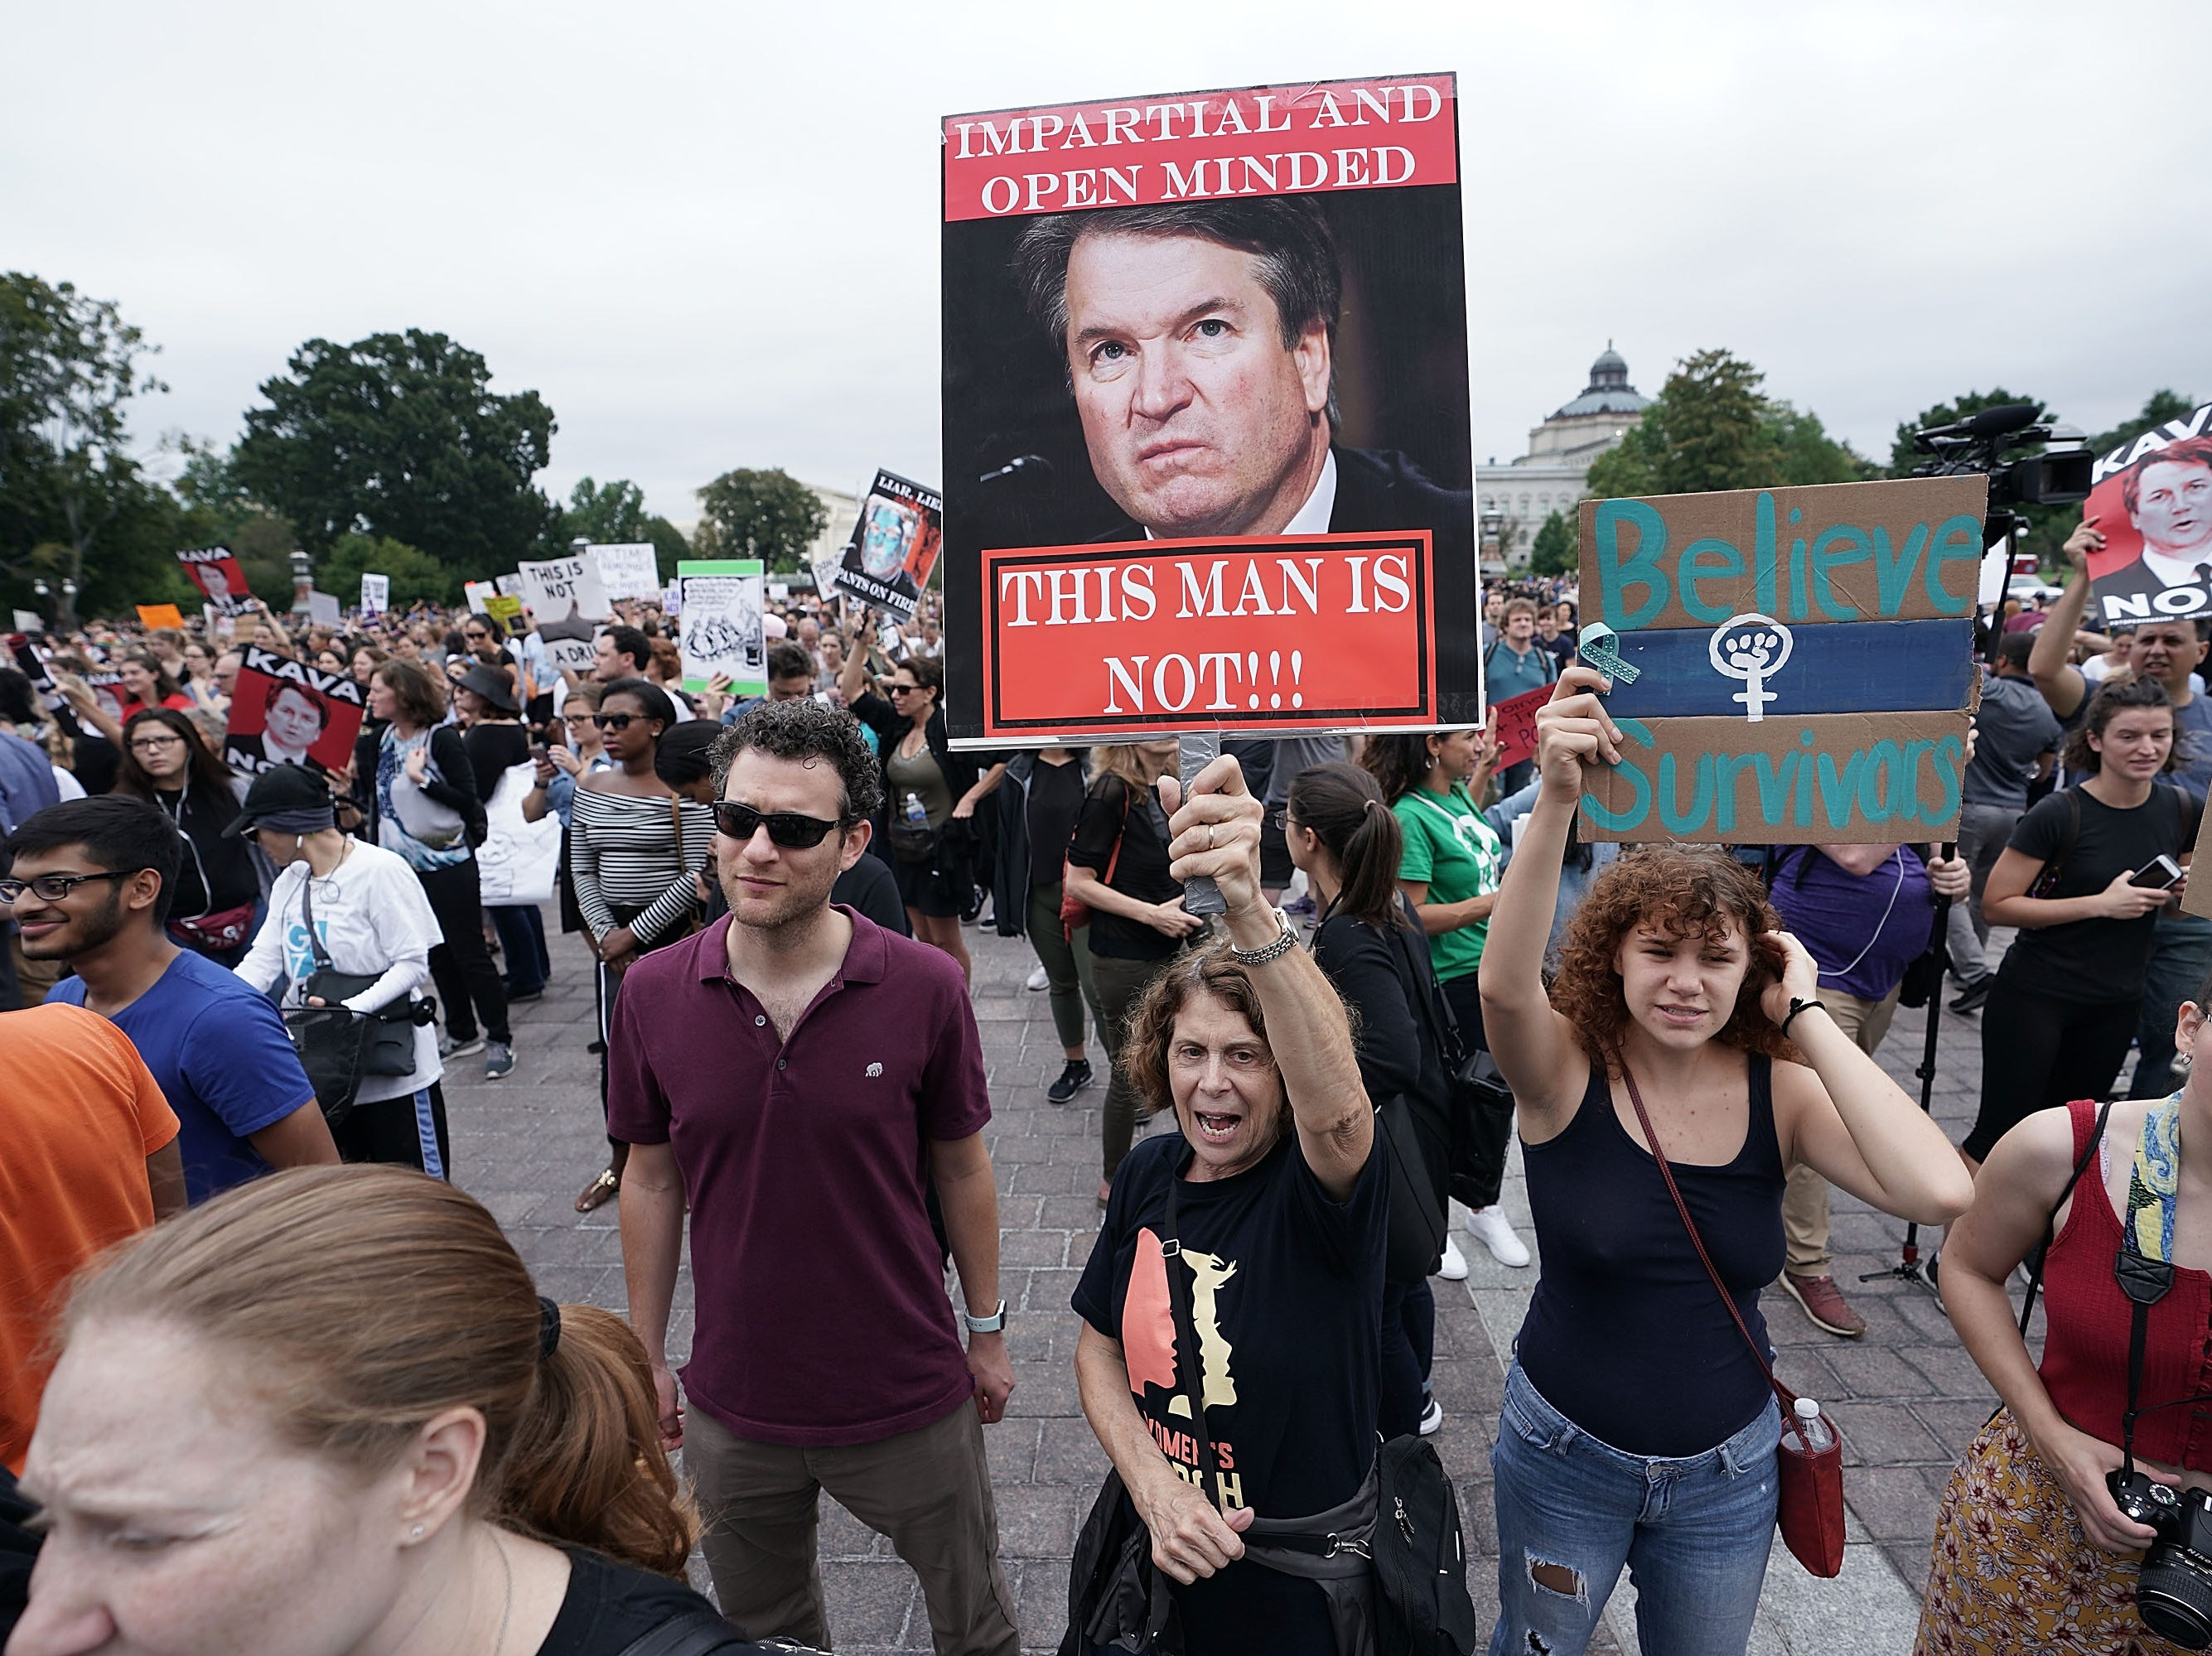 WASHINGTON, DC - OCTOBER 06:  Demonstrators shout slogans during a protest against the nomination of Supreme Court Judge Brett Kavanaugh to the U.S. Supreme Court, at the East front of the U.S. Capitol, October 6, 2018 in Washington, DC. The Senate is expected to pass a vote to confirm the nomination of Judge Brett Kavanaugh to the U.S. Supreme Court today.  (Photo by Alex Wong/Getty Images)